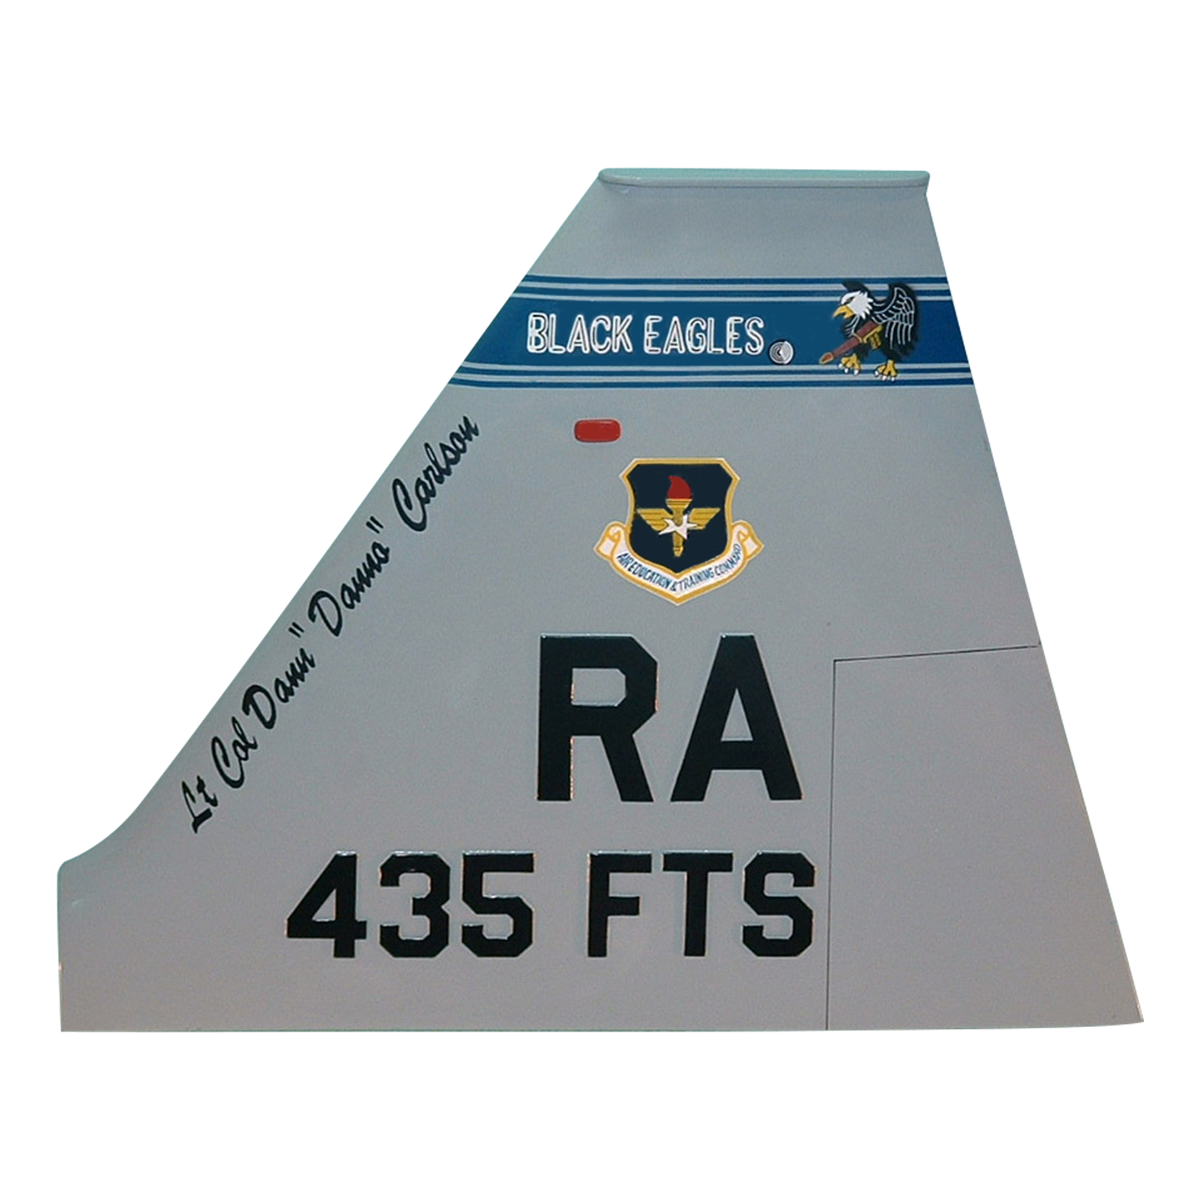 435 FTS T-38 Talon Tail Flash